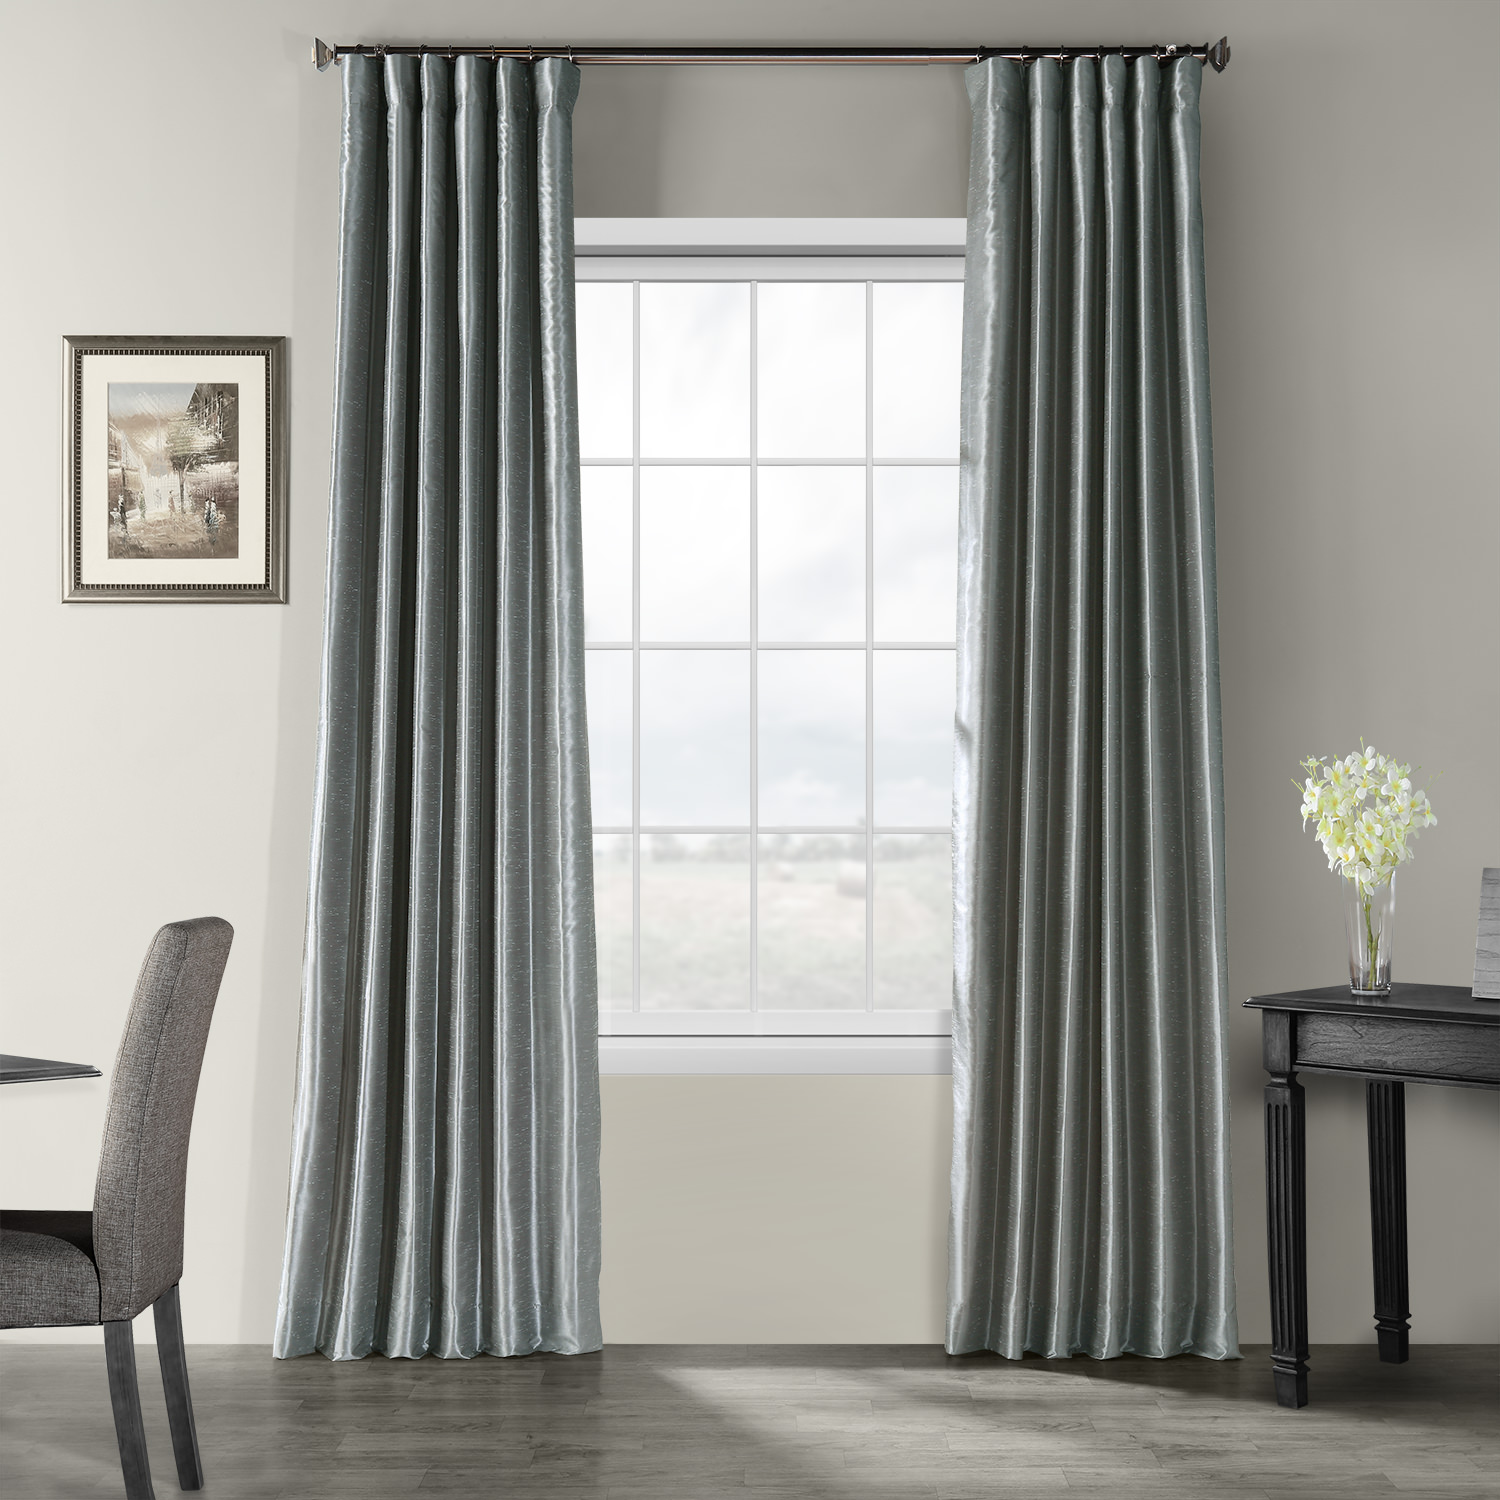 Storm Grey Textured Vintage Faux Dupioni Silk Curtain